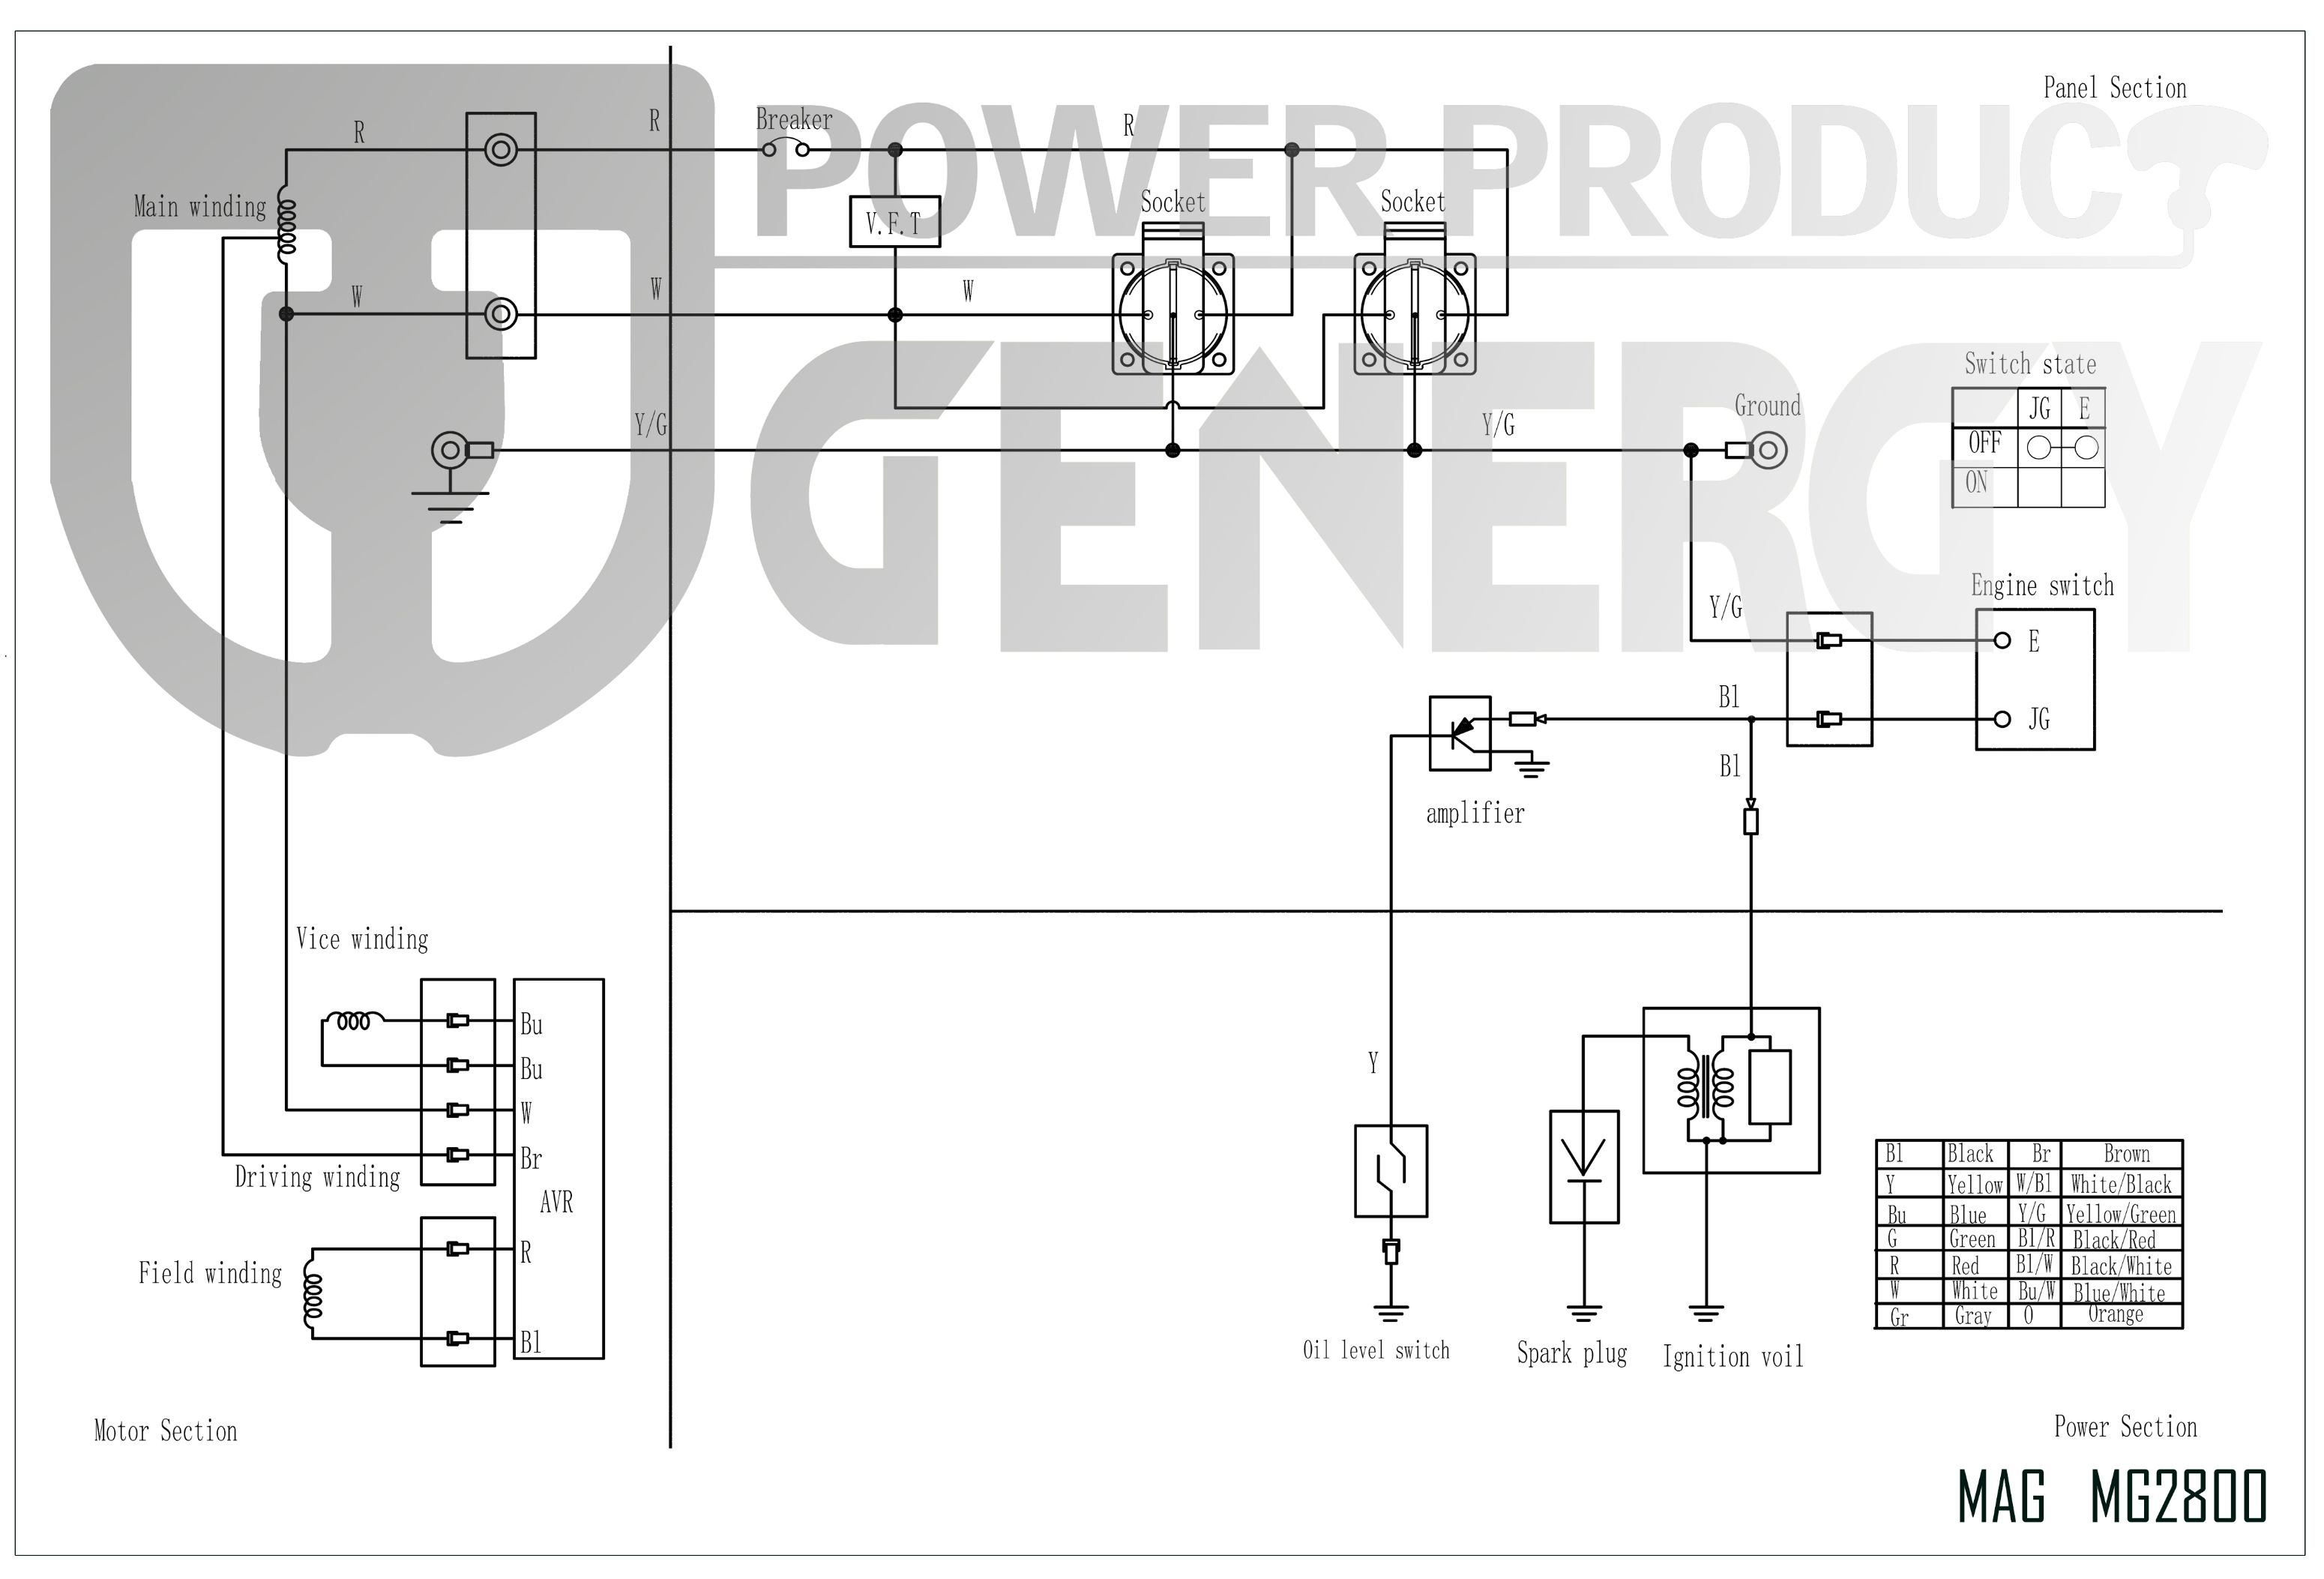 MG2800 Generator Diagram